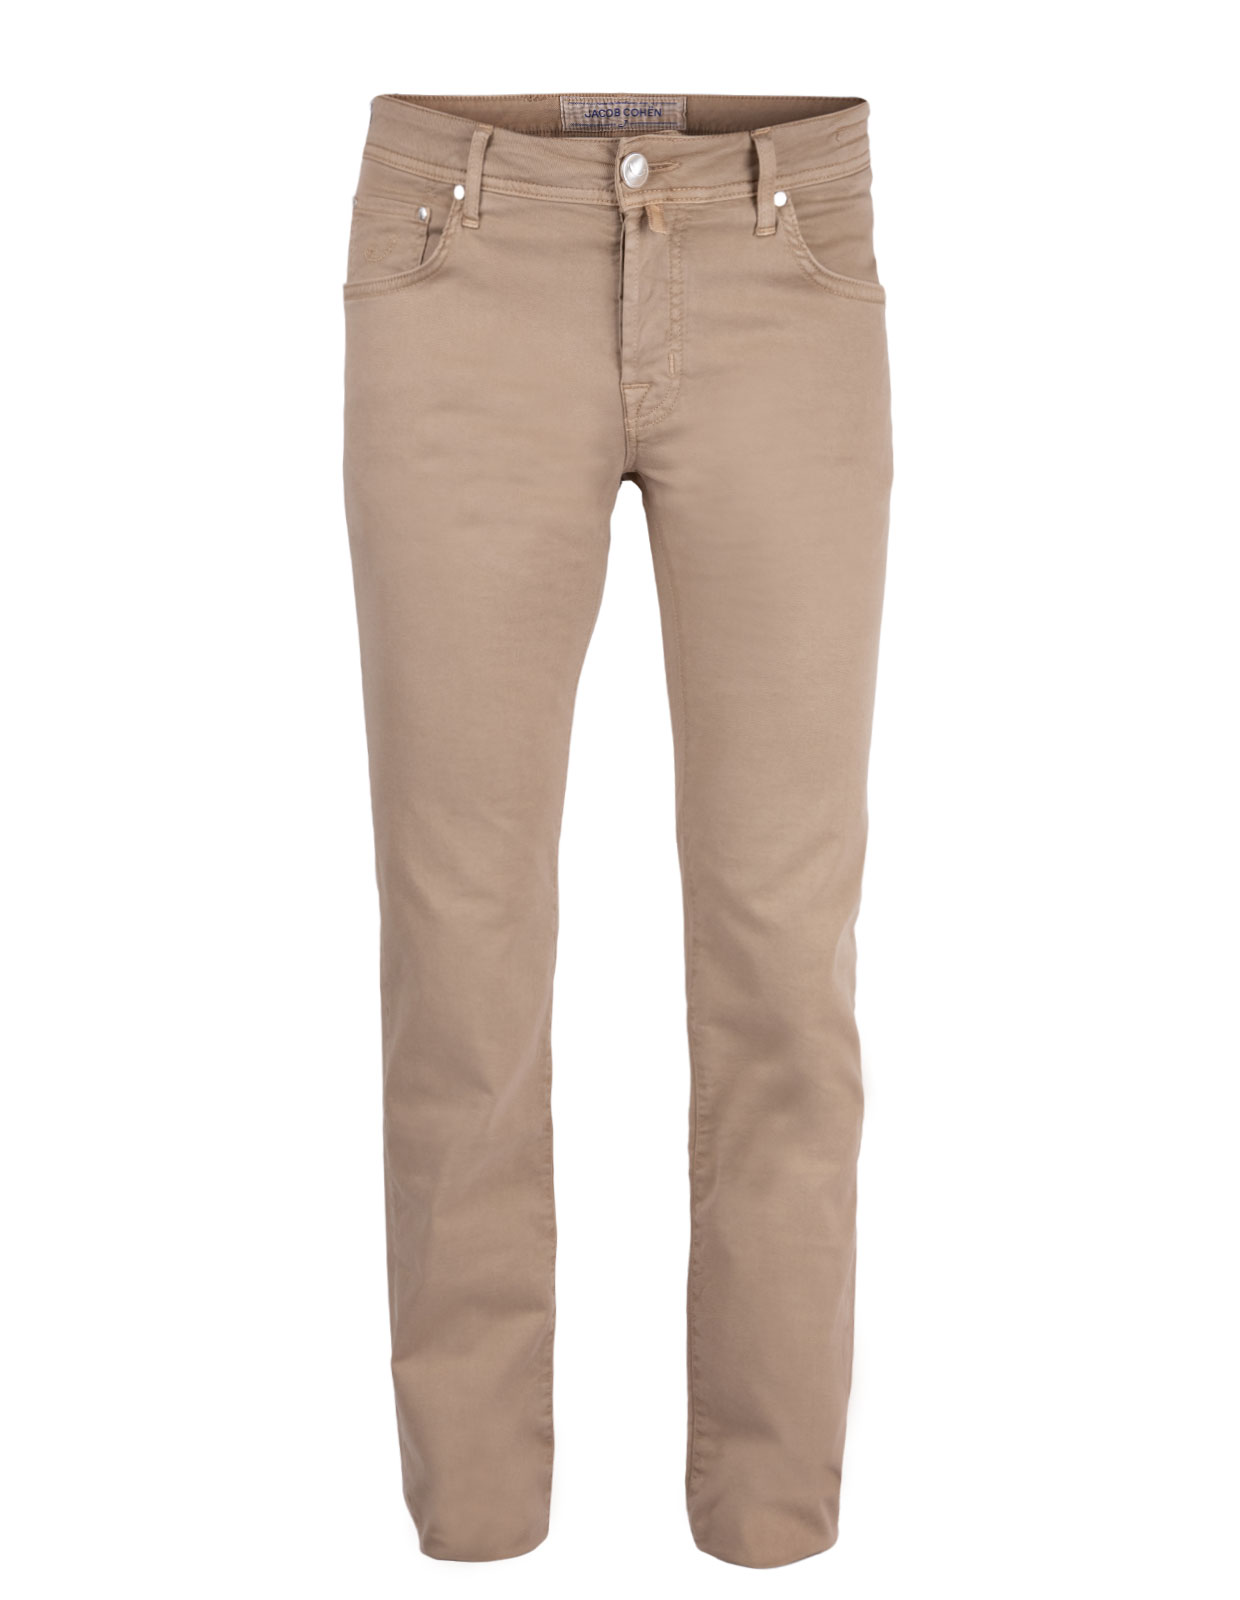 J622 5-Pocket 00566 Cotton Lyocell Stretch Khaki